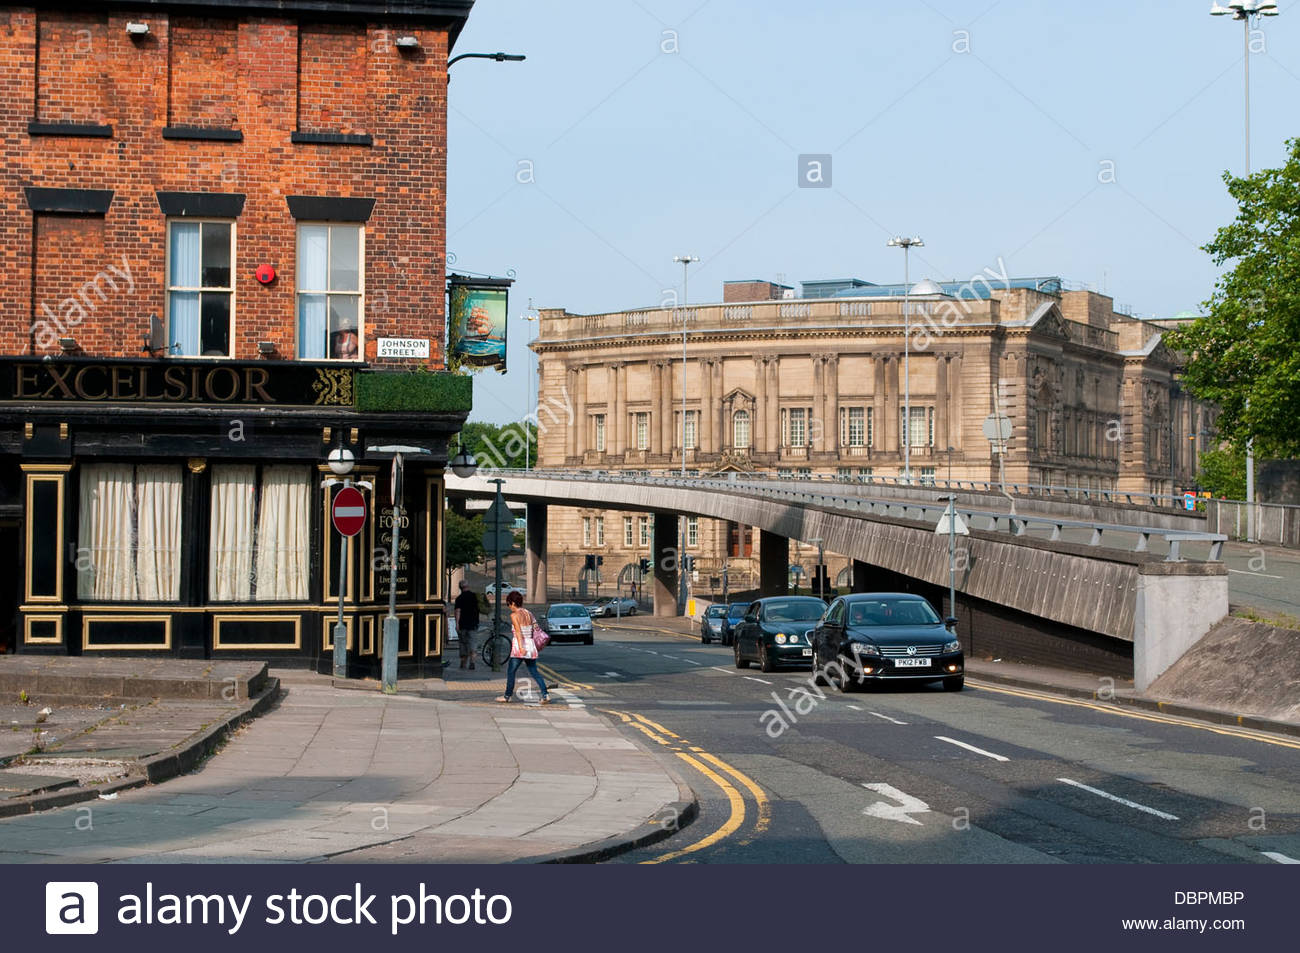 Dale Street flyover, Liverpool, UK - Stock Image